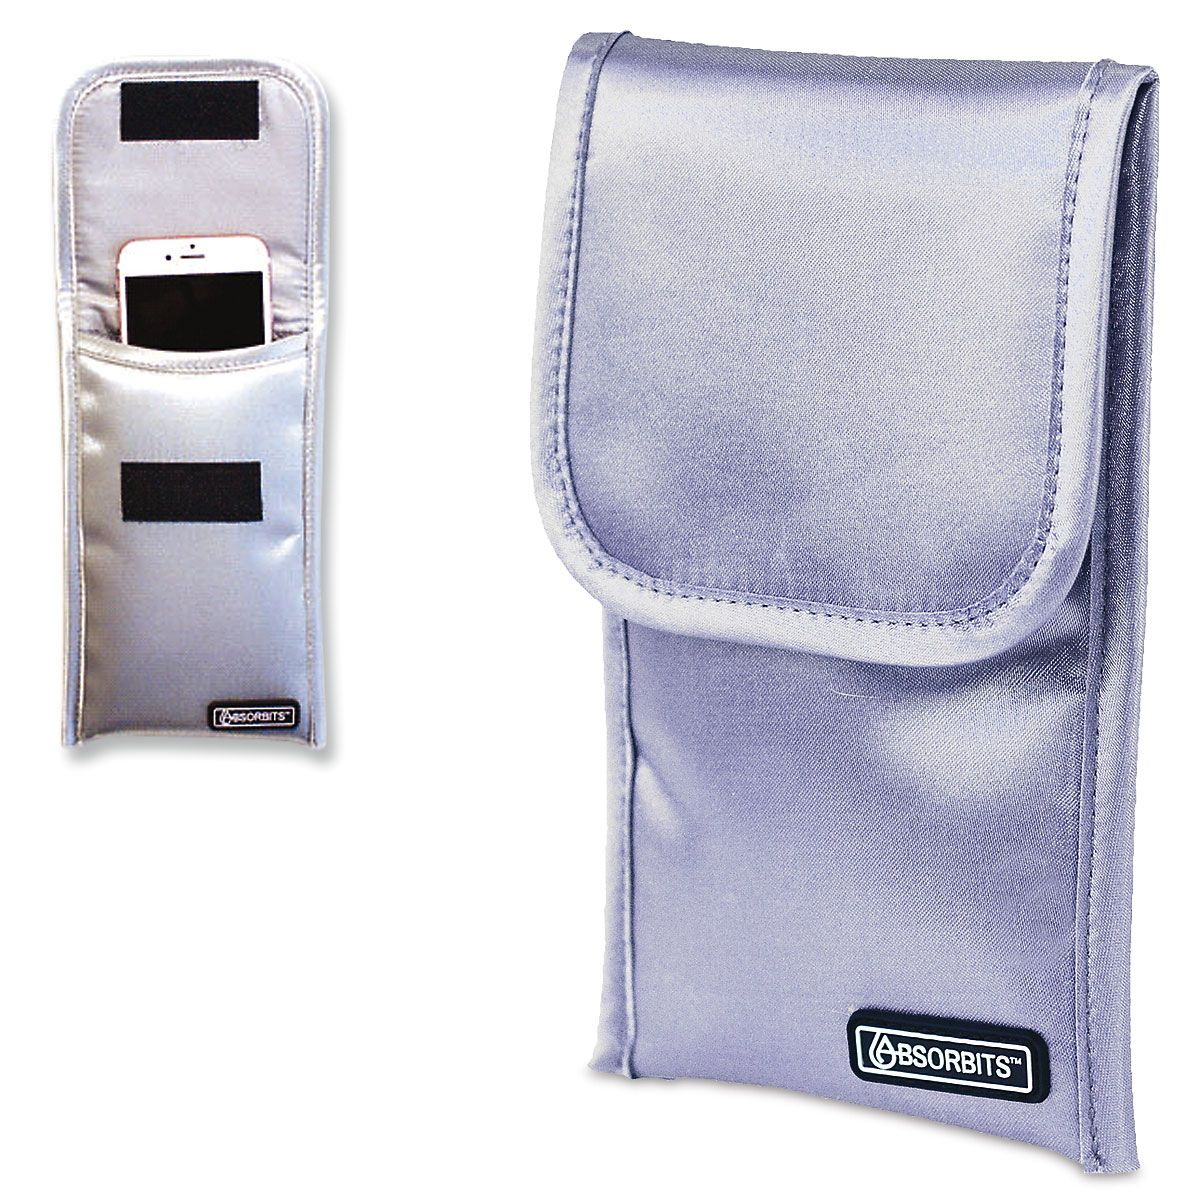 Wet Phone Rescue Pouch